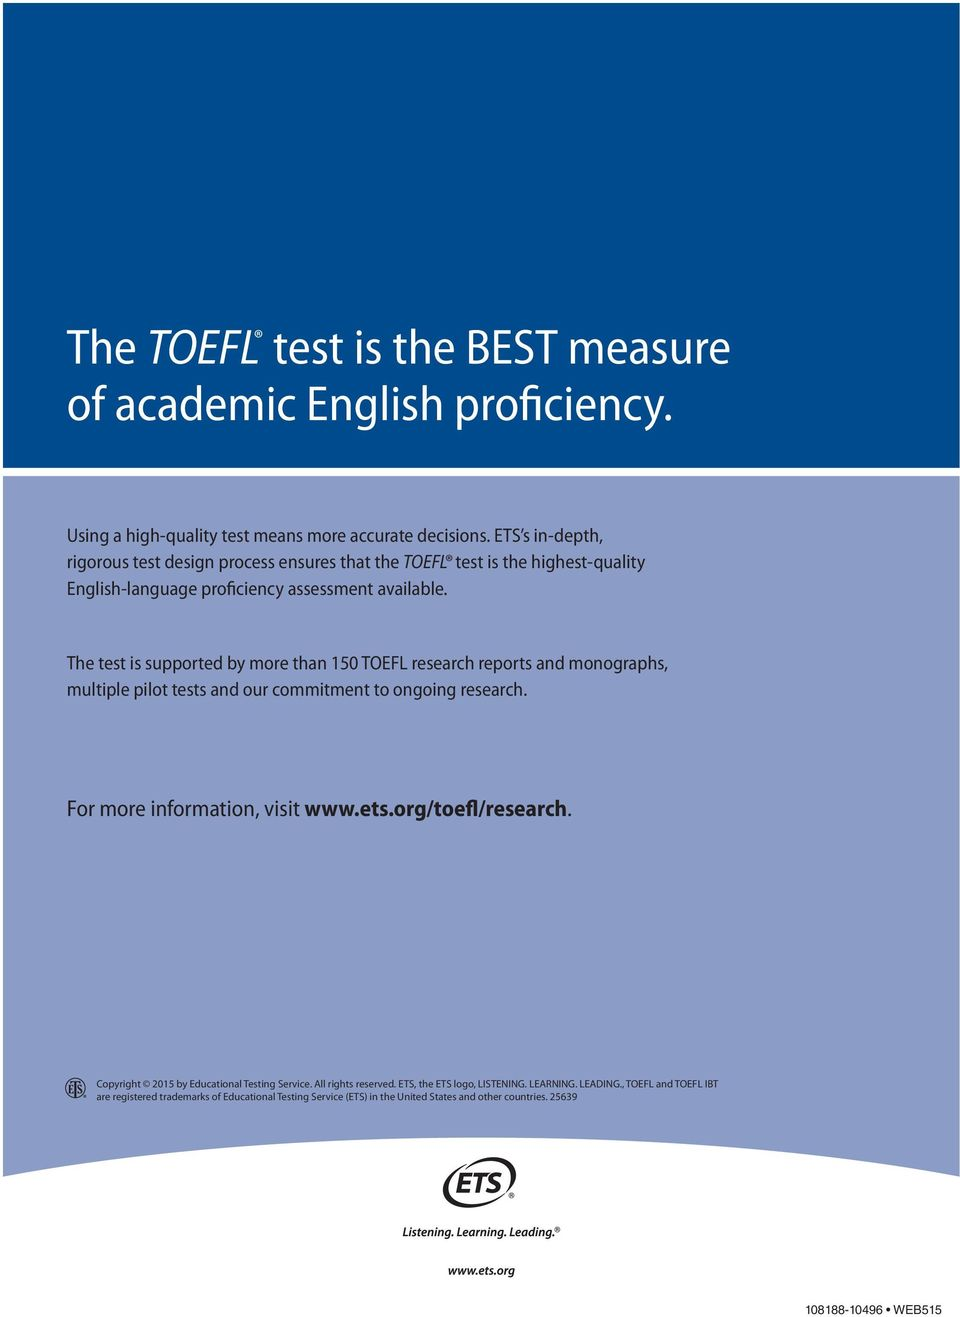 The test is supported by more than 150 TOEFL research reports and monographs, multiple pilot tests and our commitment to ongoing research. For more information, visit www.ets.